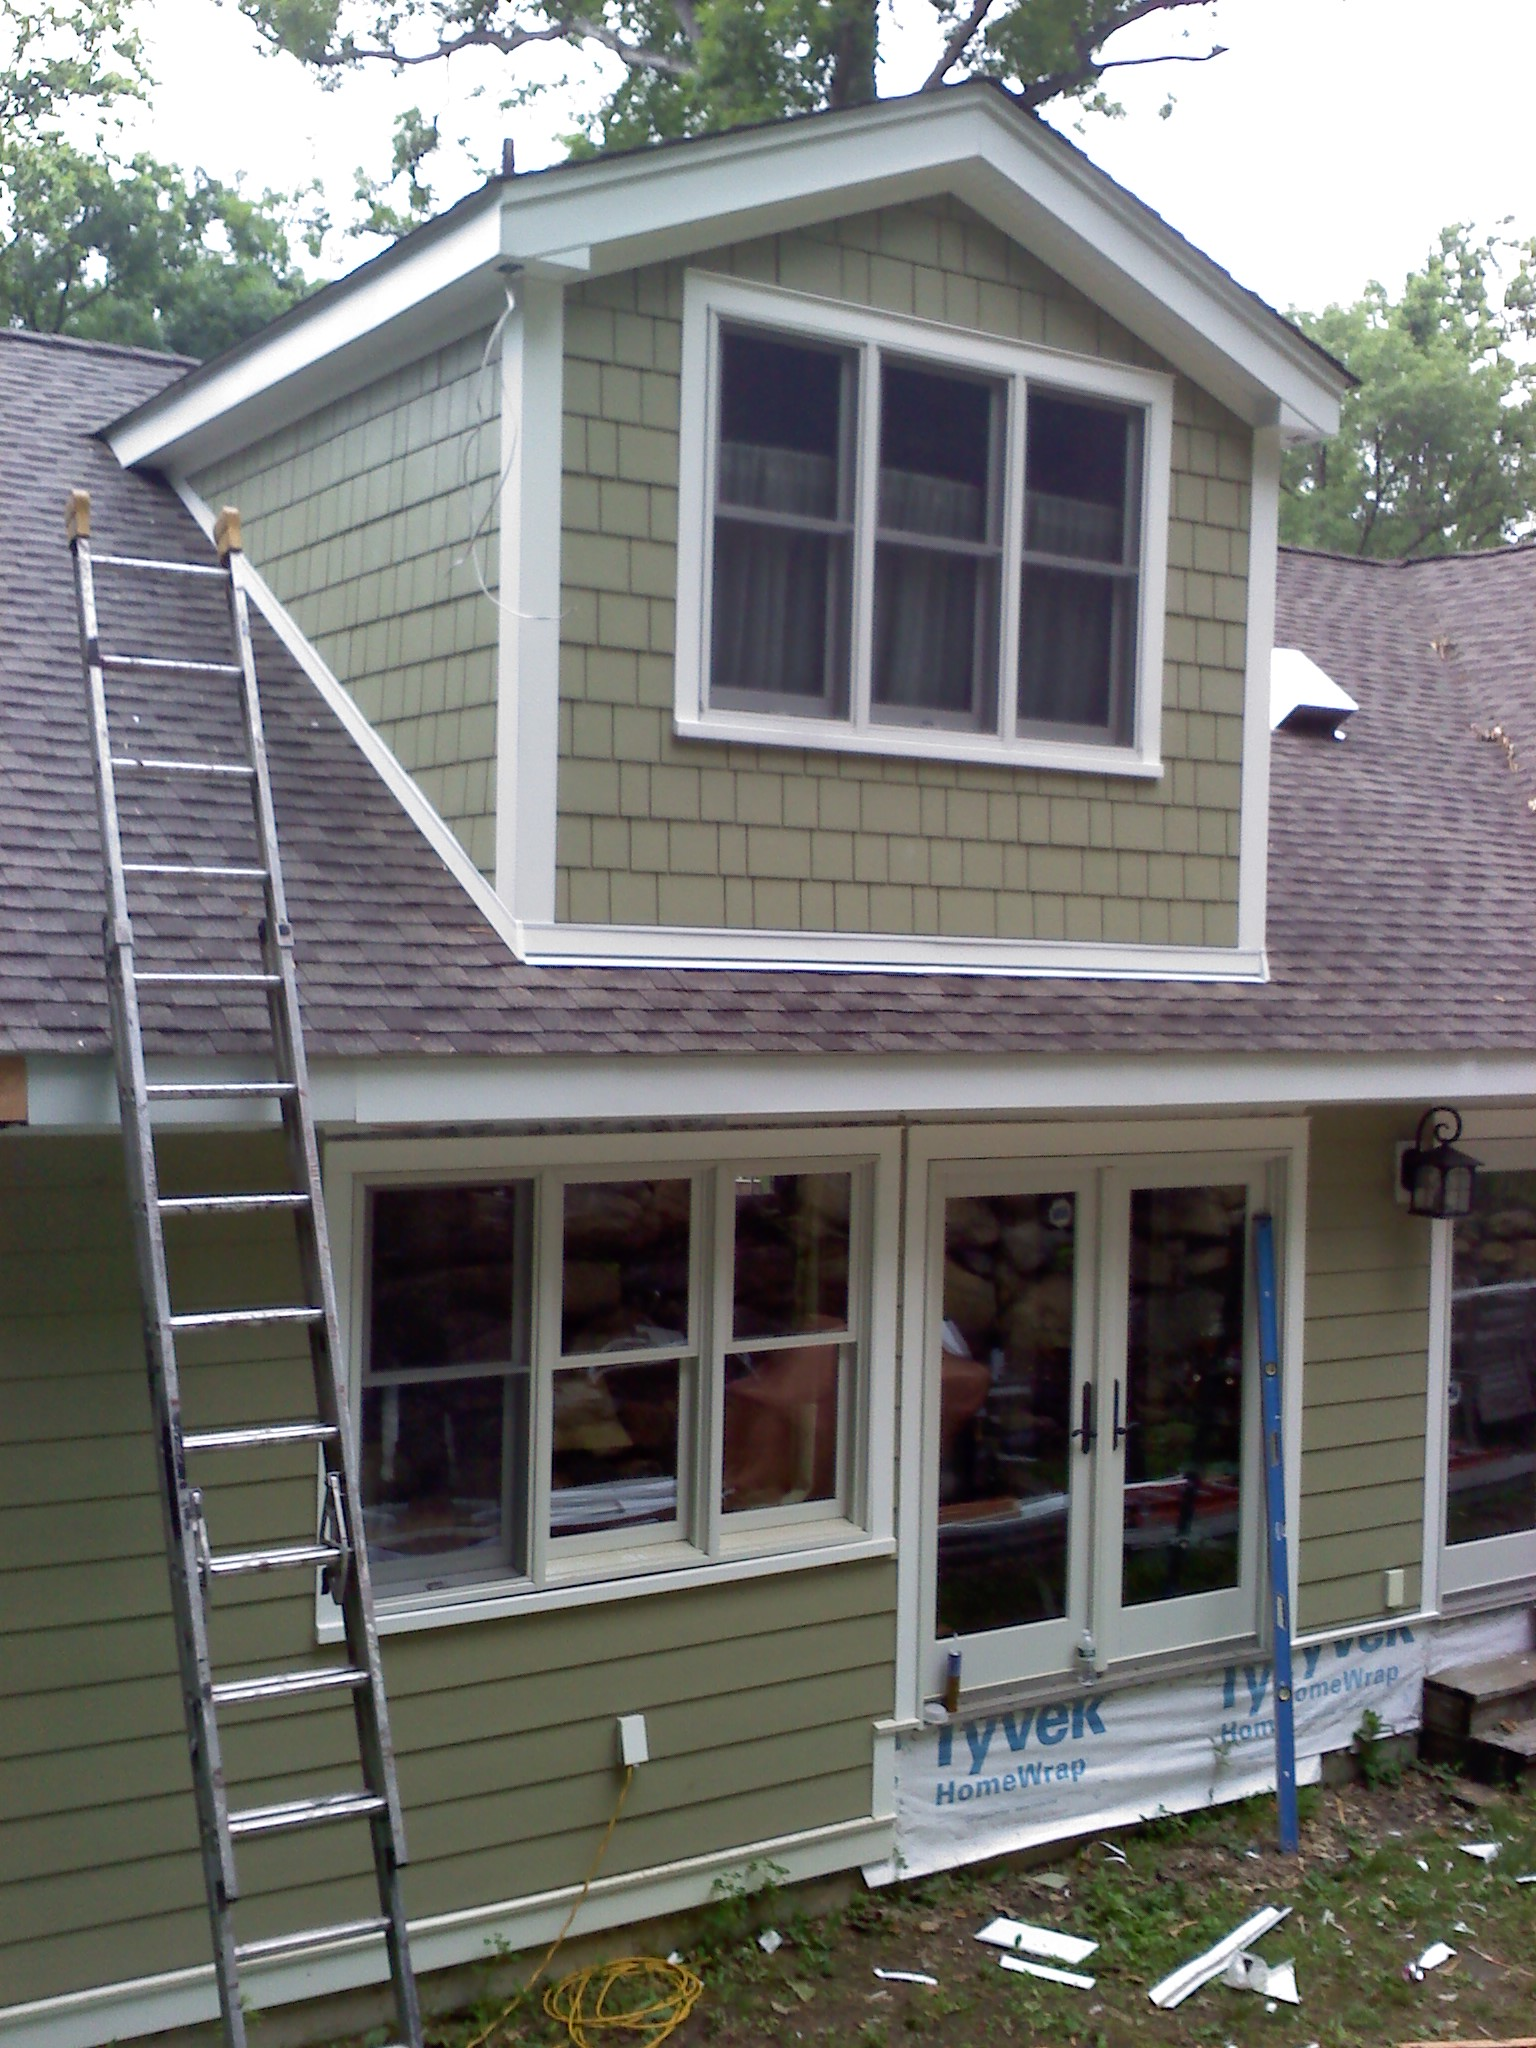 wall to roof har flashing details windows siding and doors